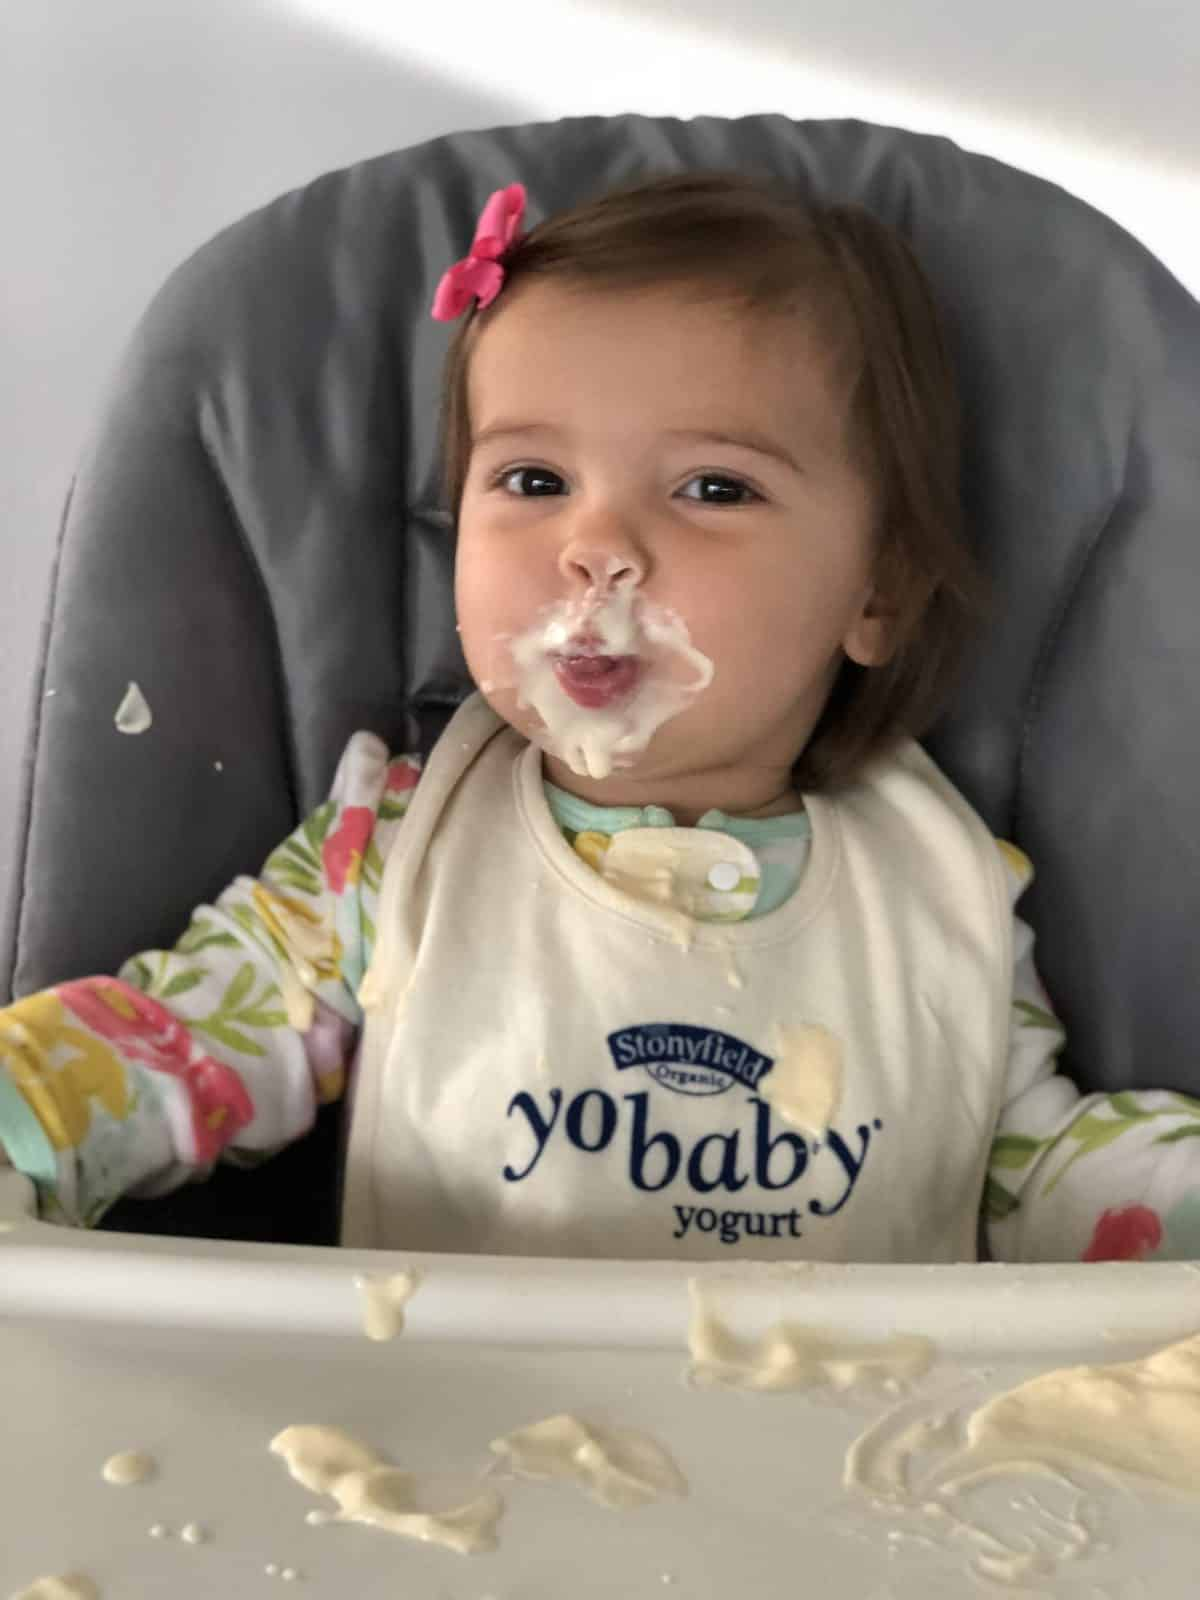 young girl (around 13 months) at high chair smiling with yogurt all over her face with spoon in hand.